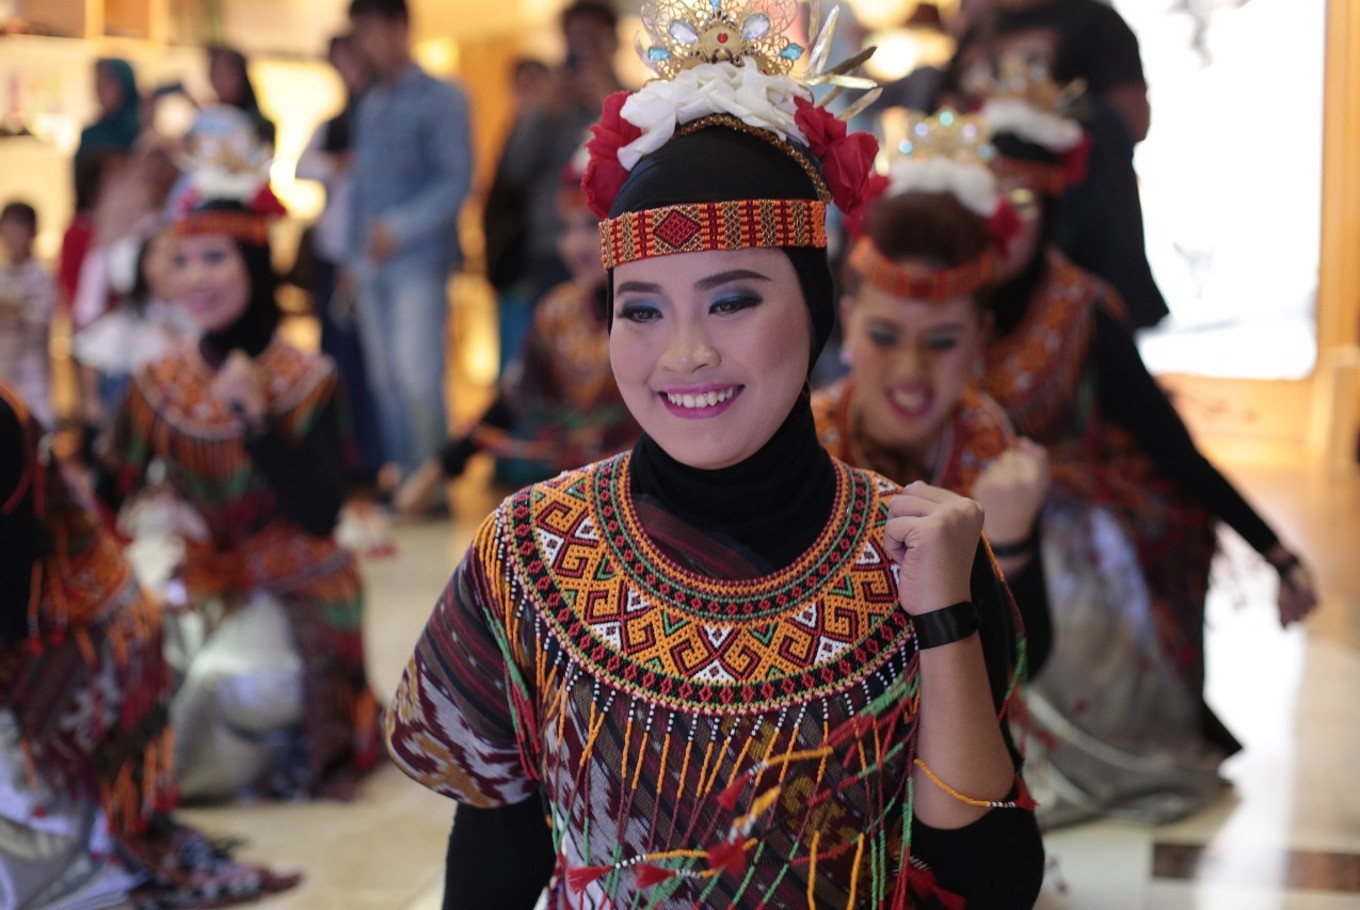 Over 3,000 people dance at Indonesia Menari 2017 - Art